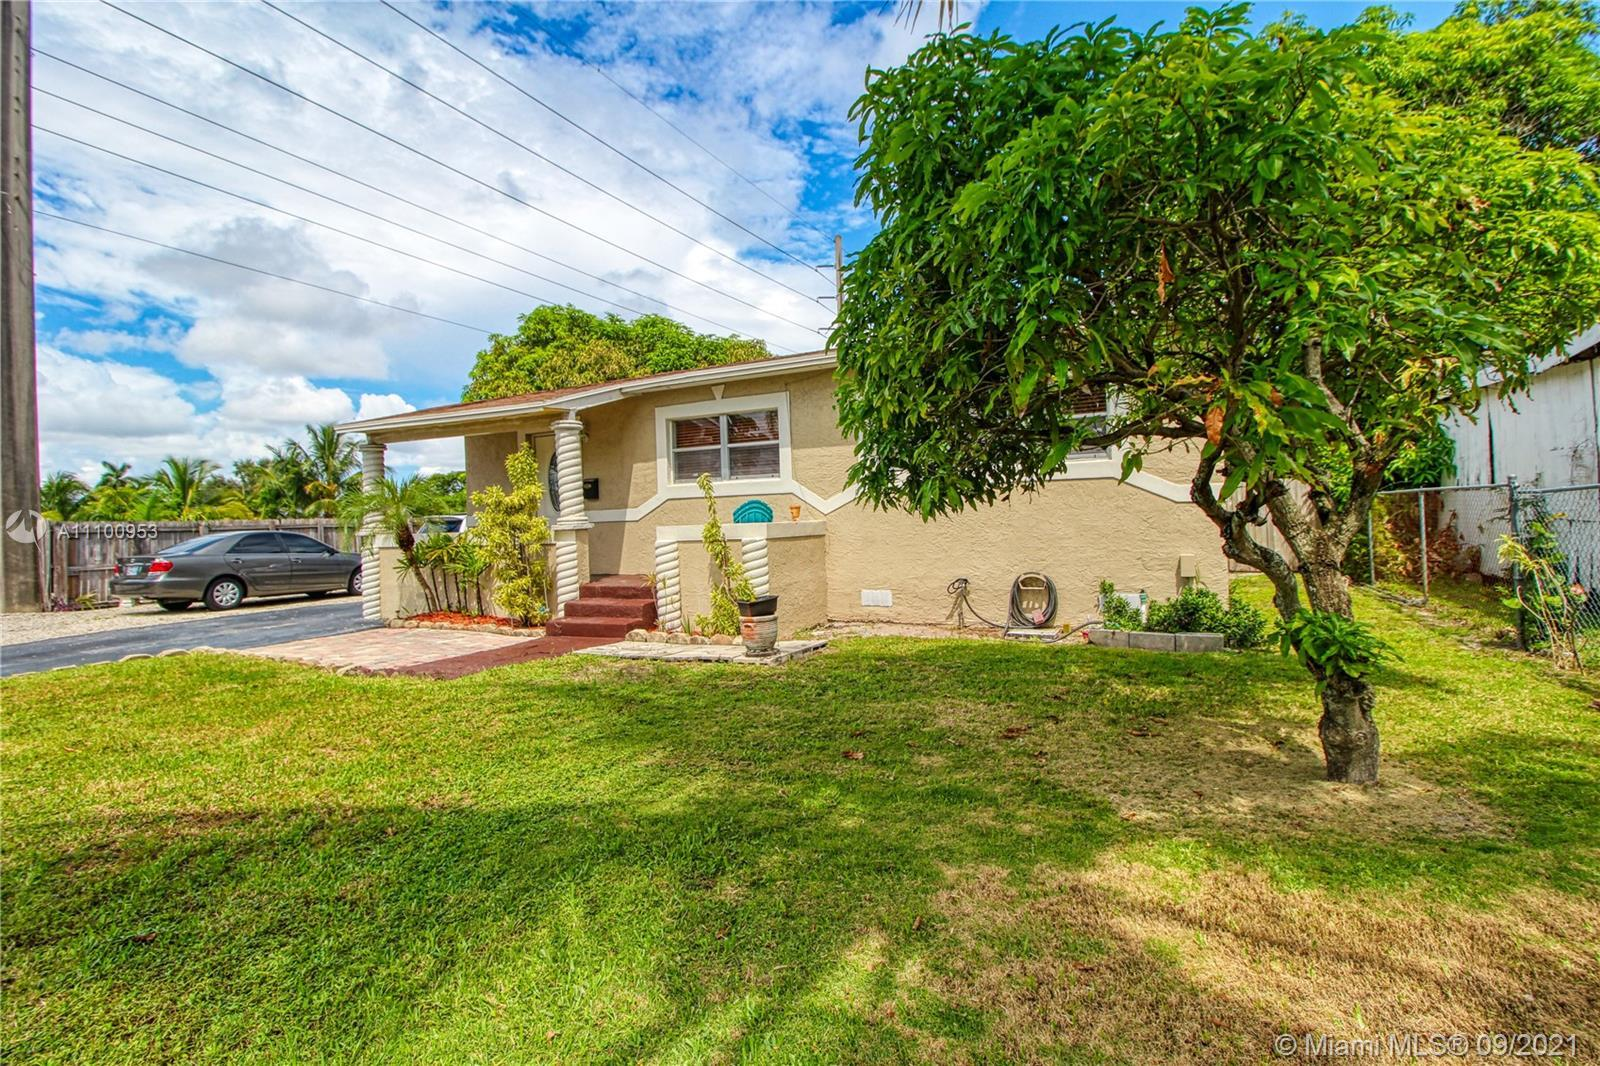 New Listing alert!!! Come tour this cozy single family home which offers a lot of private backyard s